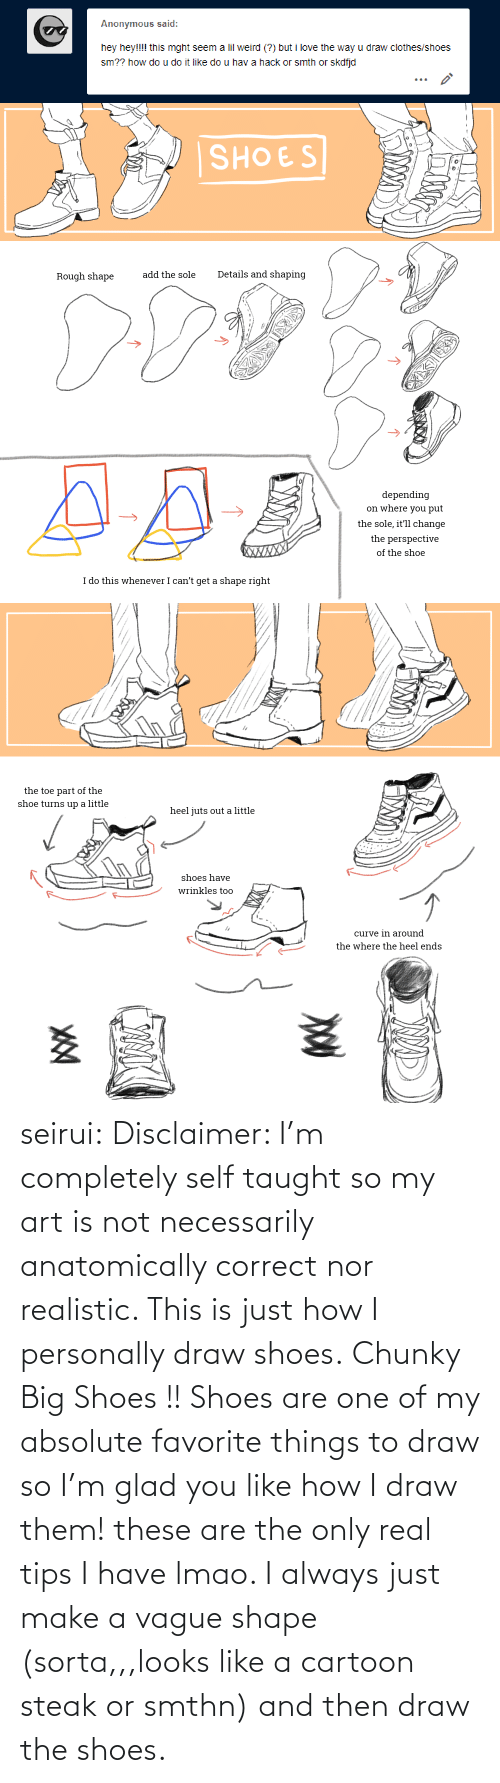 shoe: Anonymous said:  hey hey!!!! this mght seem a lil weird (?) but i love the way u draw clothes/shoes  sm?? how do u do it like do u hav a hack or smth or skdfjd   SHOES  Details and shaping  add the sole  Rough shape  depending  on where you put  the sole, it'll change  the perspective  XWXXX  of the shoe  I do this whenever I can't get a shape right   the toe part of the  shoe turns up a little  heel juts out a little  shoes have  wrinkles too  curve in around  the where the heel ends seirui: Disclaimer: I'm completely self taught so my art is not necessarily anatomically correct nor realistic. This is just how I personally draw shoes. Chunky Big Shoes !! Shoes are one of my absolute favorite things to draw so I'm glad you like how I draw them! these are the only real tips I have lmao. I always just make a vague shape (sorta,,,looks like a cartoon steak or smthn) and then draw the shoes.